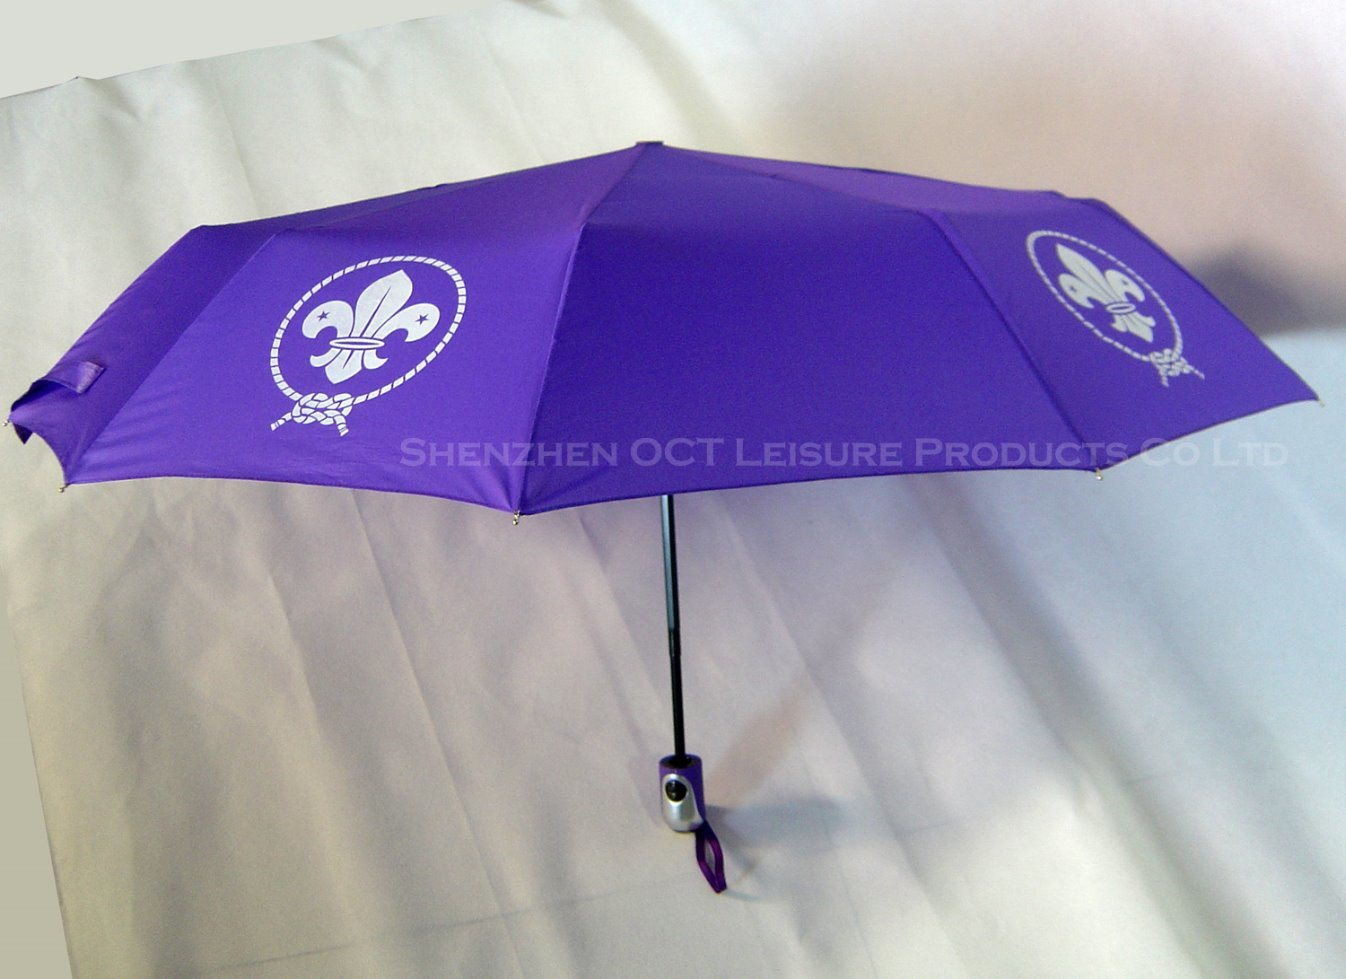 10 Ribs Auto Open&Close Umbrella with Strengthened Design